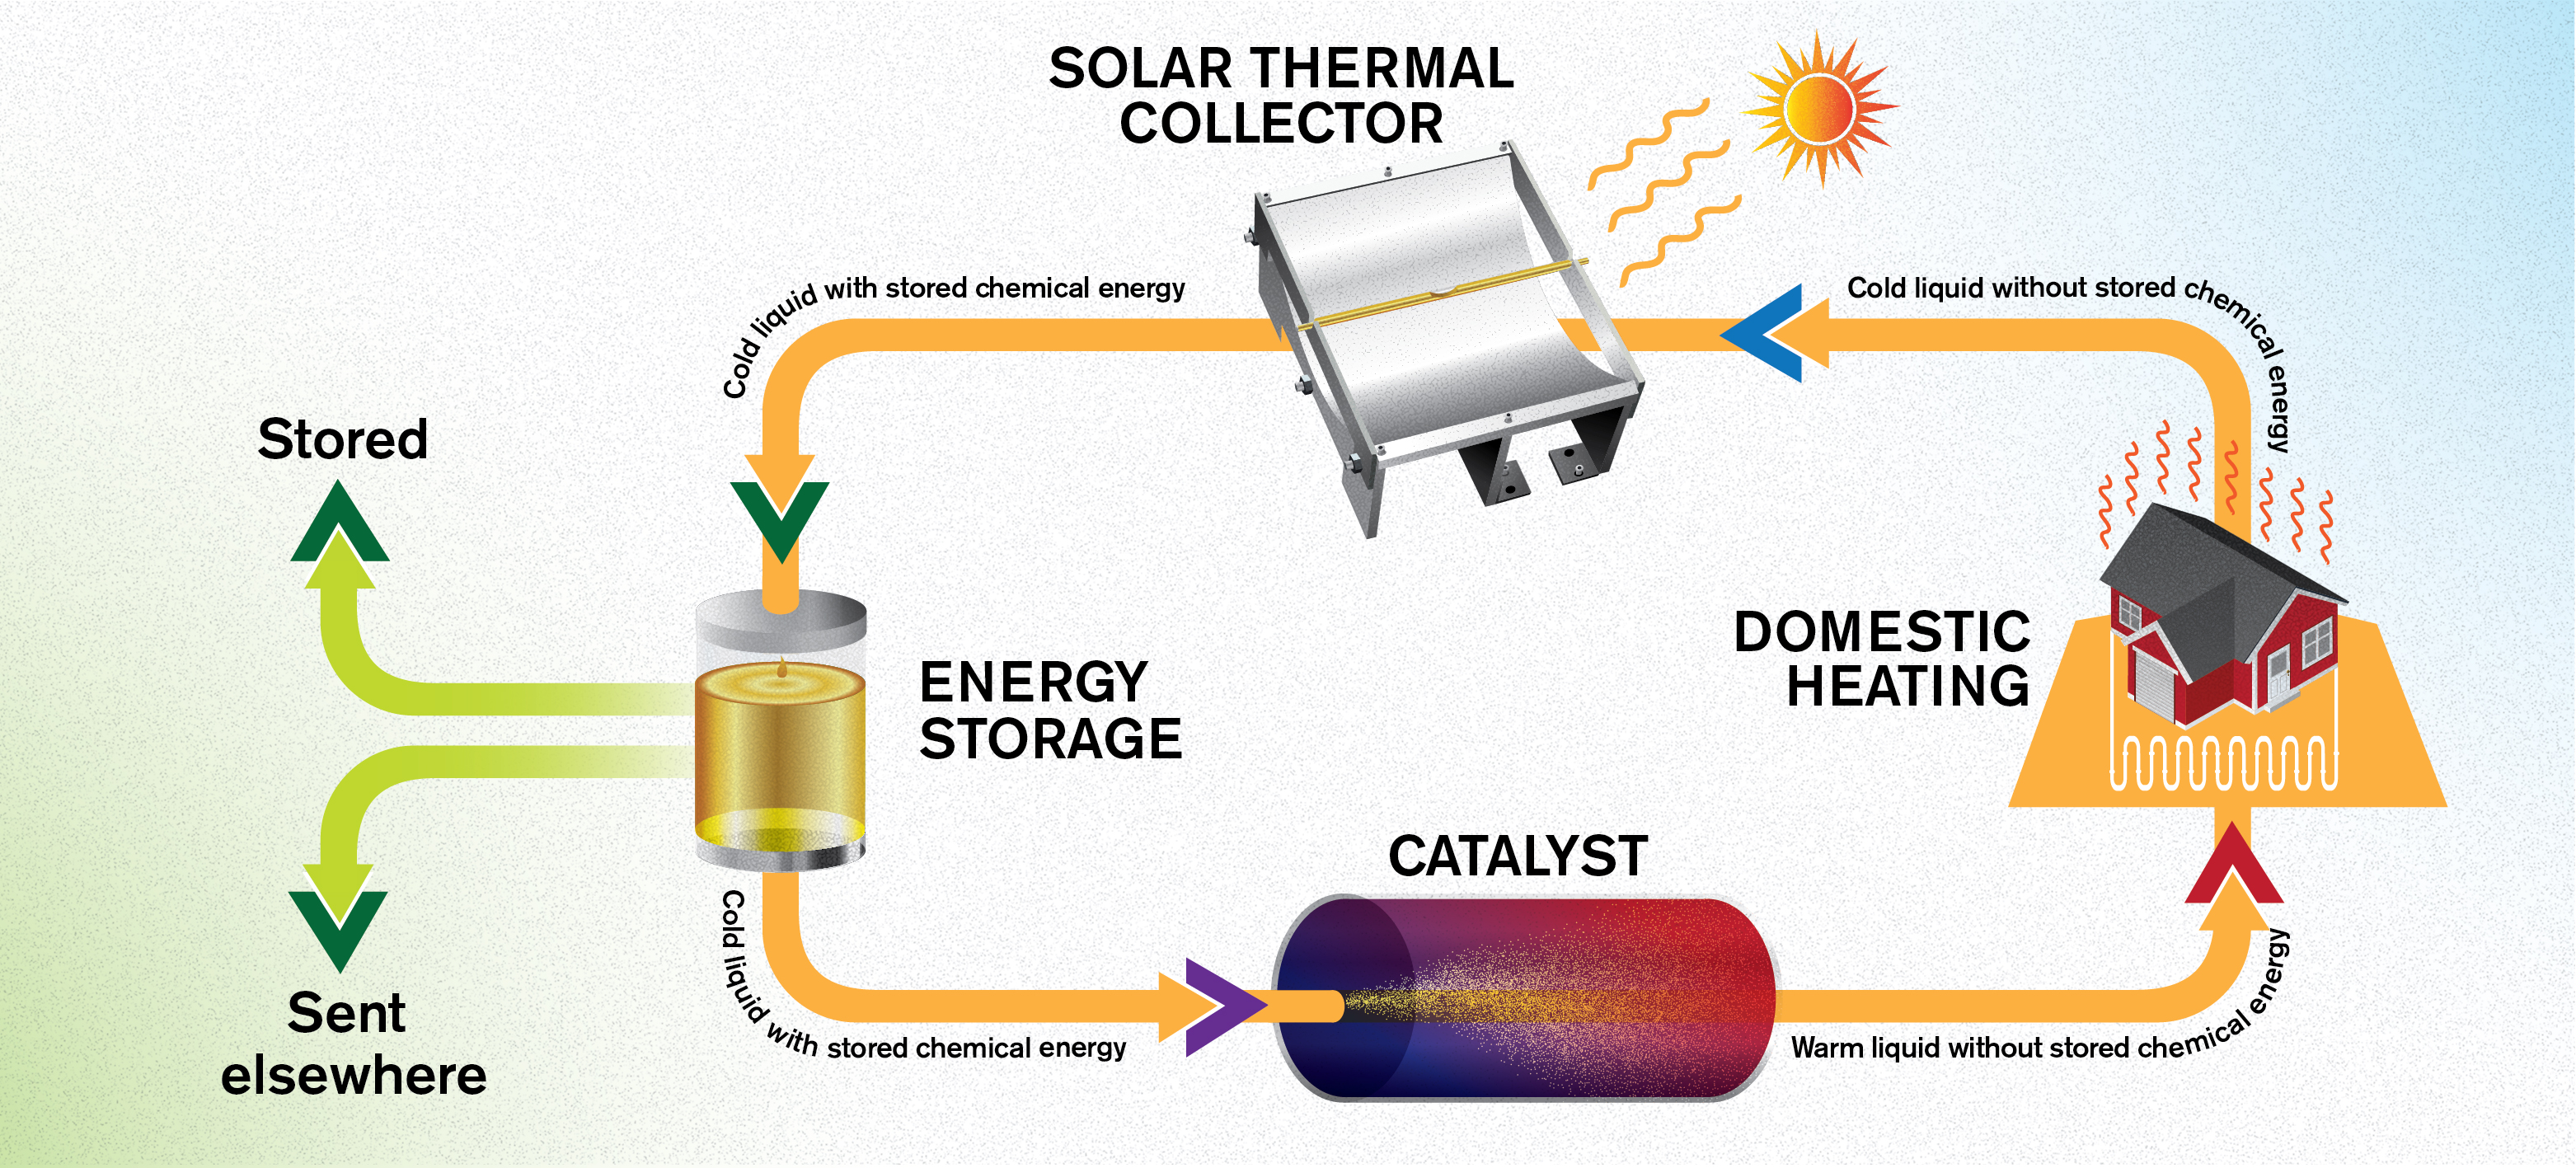 Solar Thermal Collector Stays Cold Can Wait Up To 18